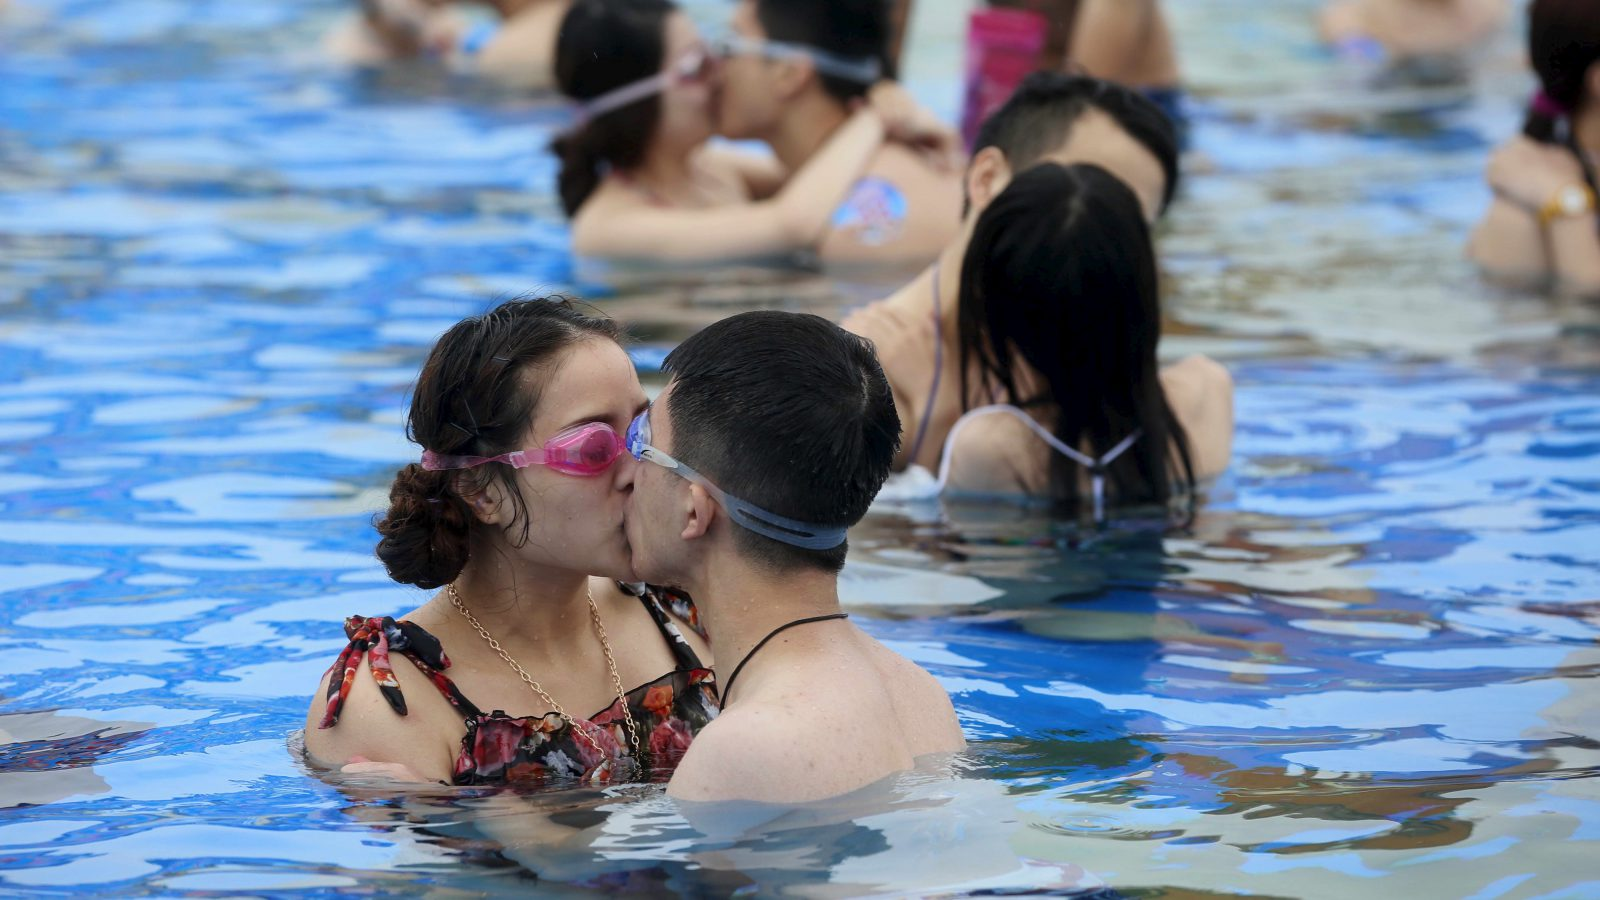 Couples kiss at a swimming pool during a kissing contest in Shanghai July 5, 2015. About 20 couples took part in the game and the winning couple who held their kiss for the longest time won a diamond ring, according to local media. Picture taken July 5, 2015.  REUTERS/China Daily CHINA OUT. NO COMMERCIAL OR EDITORIAL SALES IN CHINA - RTX1JBUF